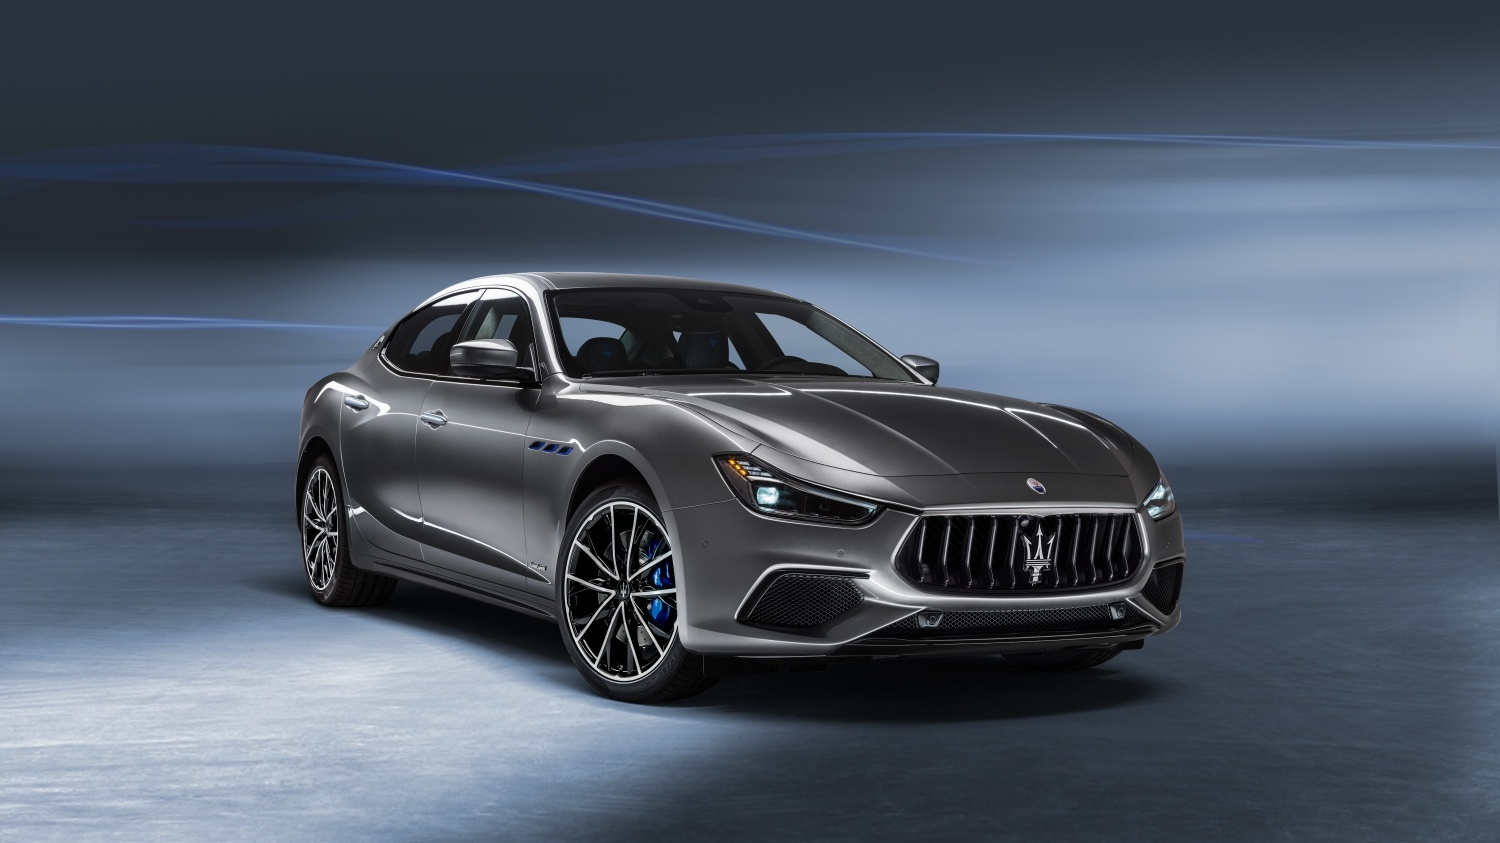 New Ghibli Hybrid the first electrified vehicle in Maserati's history